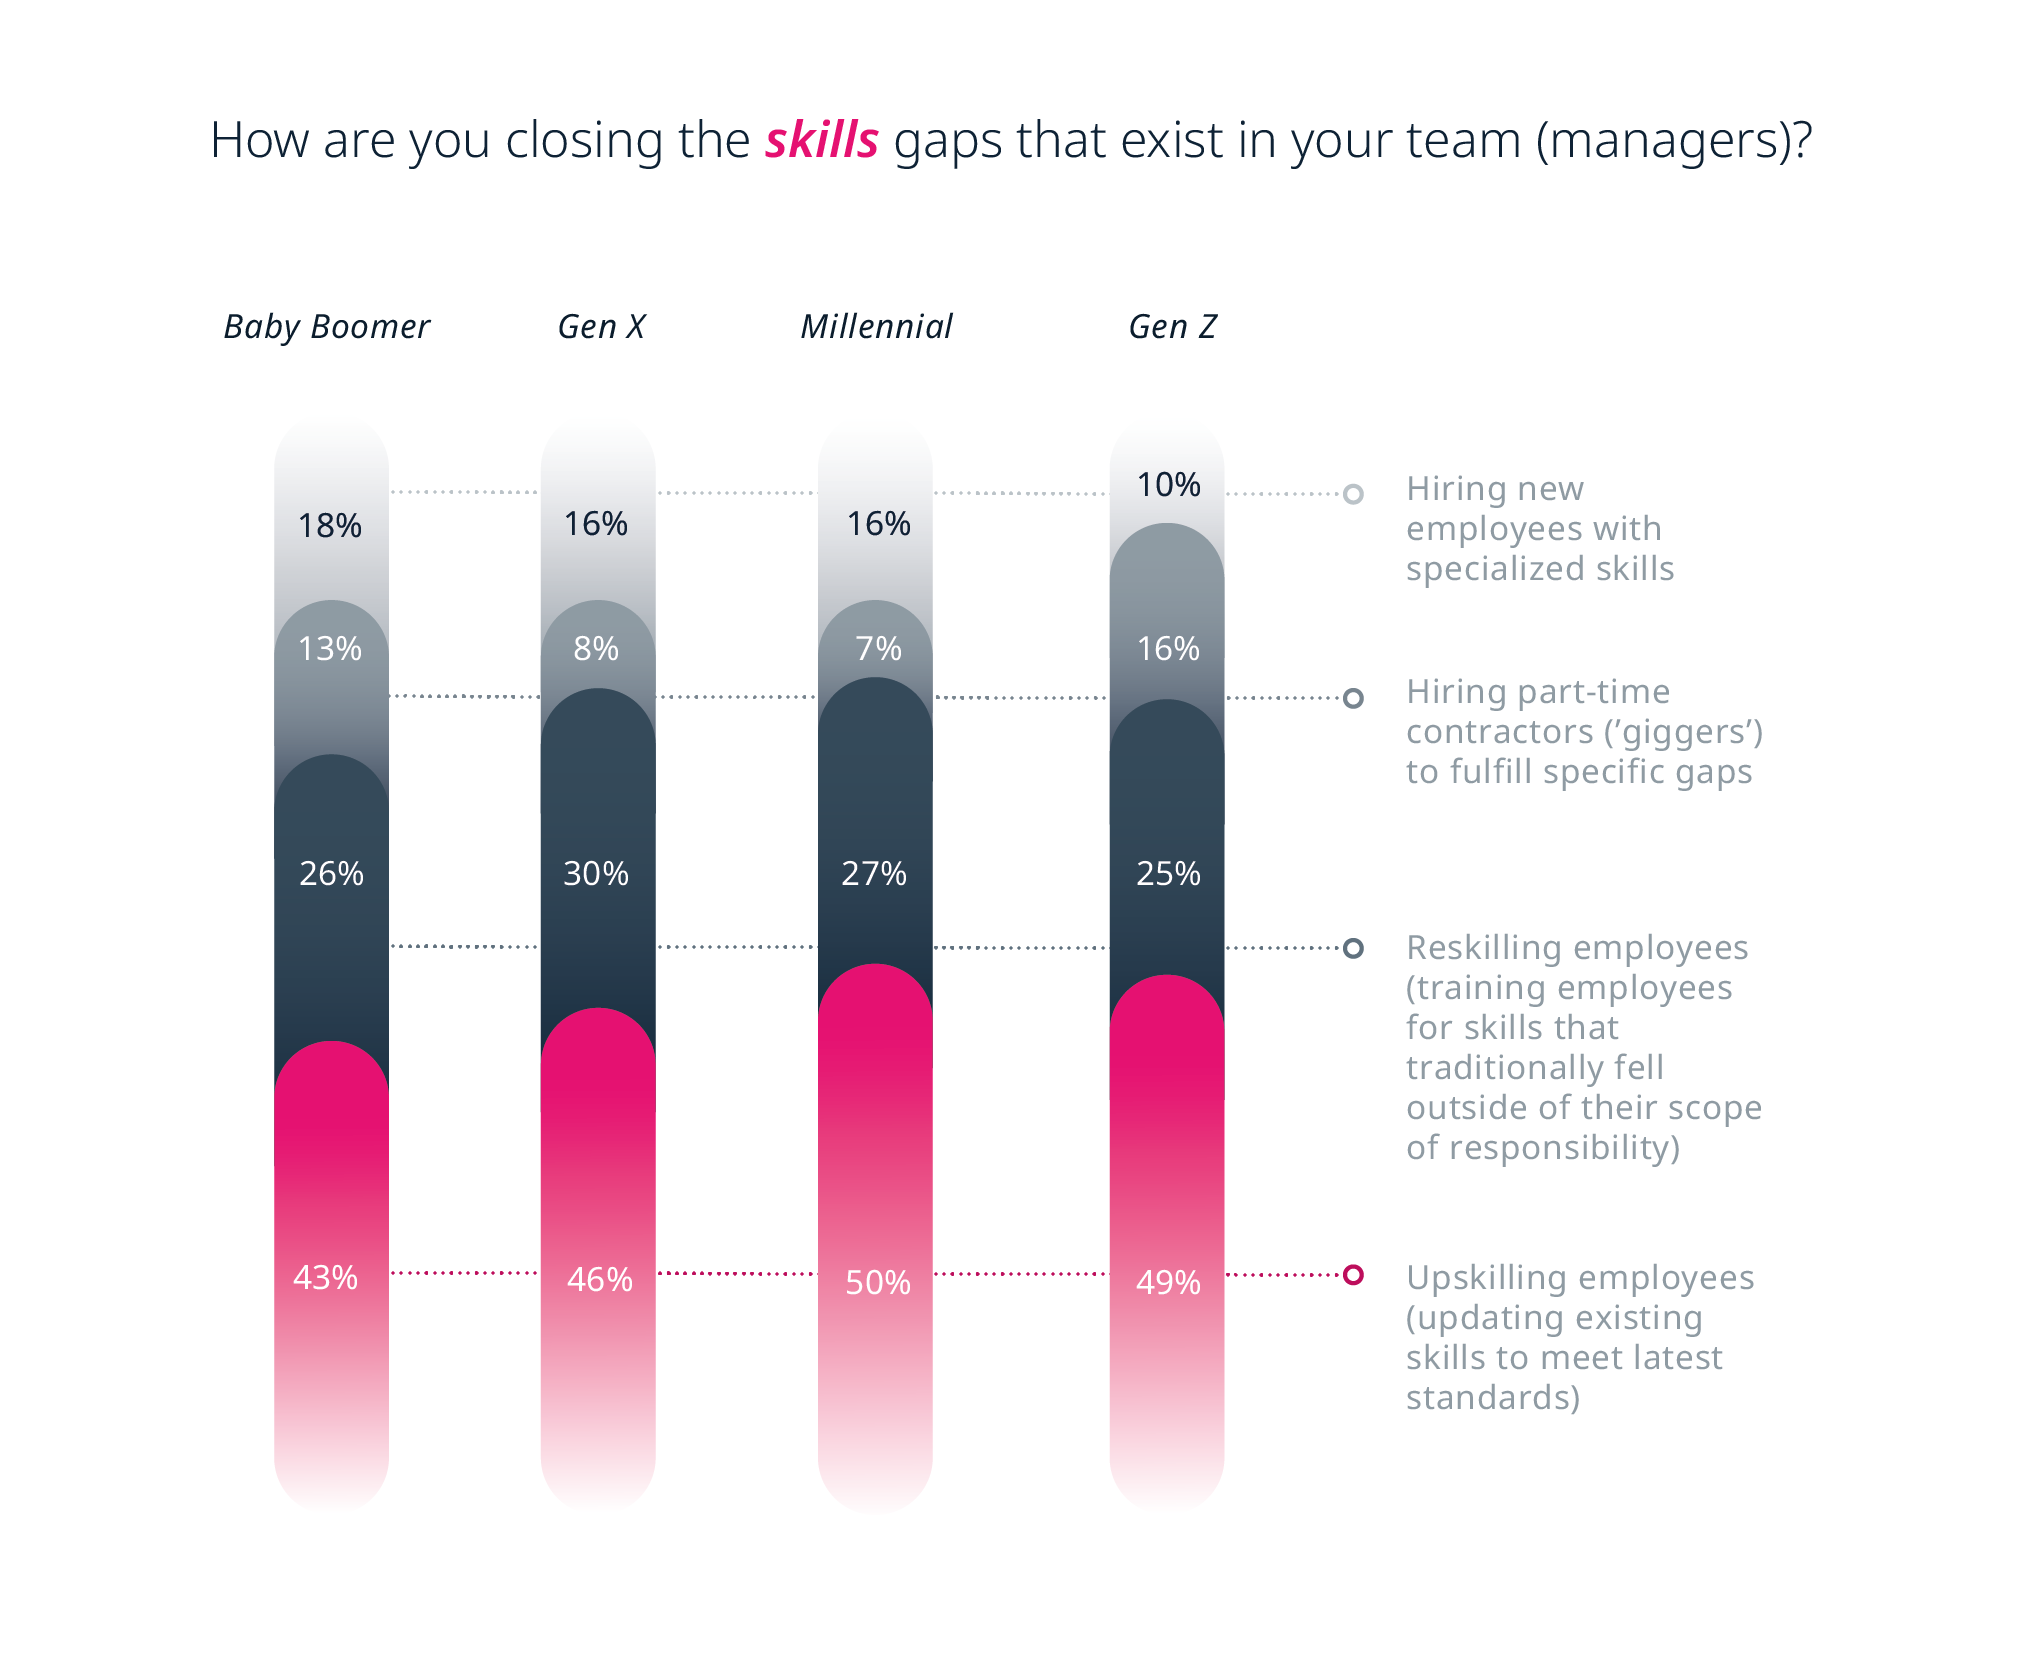 How managers from different generations are closing the skills gaps that exist in their teams